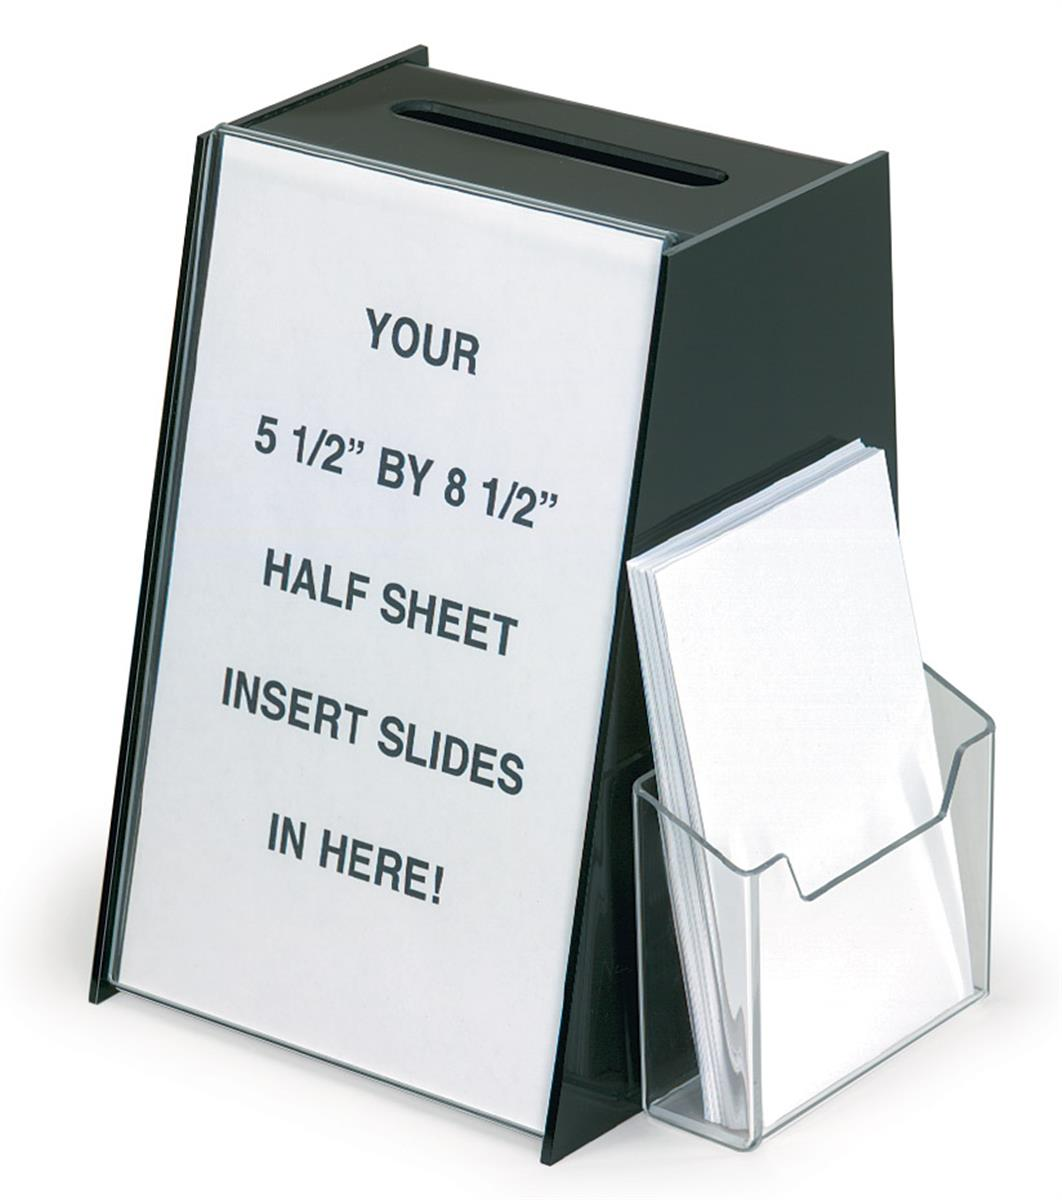 Employee Suggestion Box Comment Amp Voting Container For